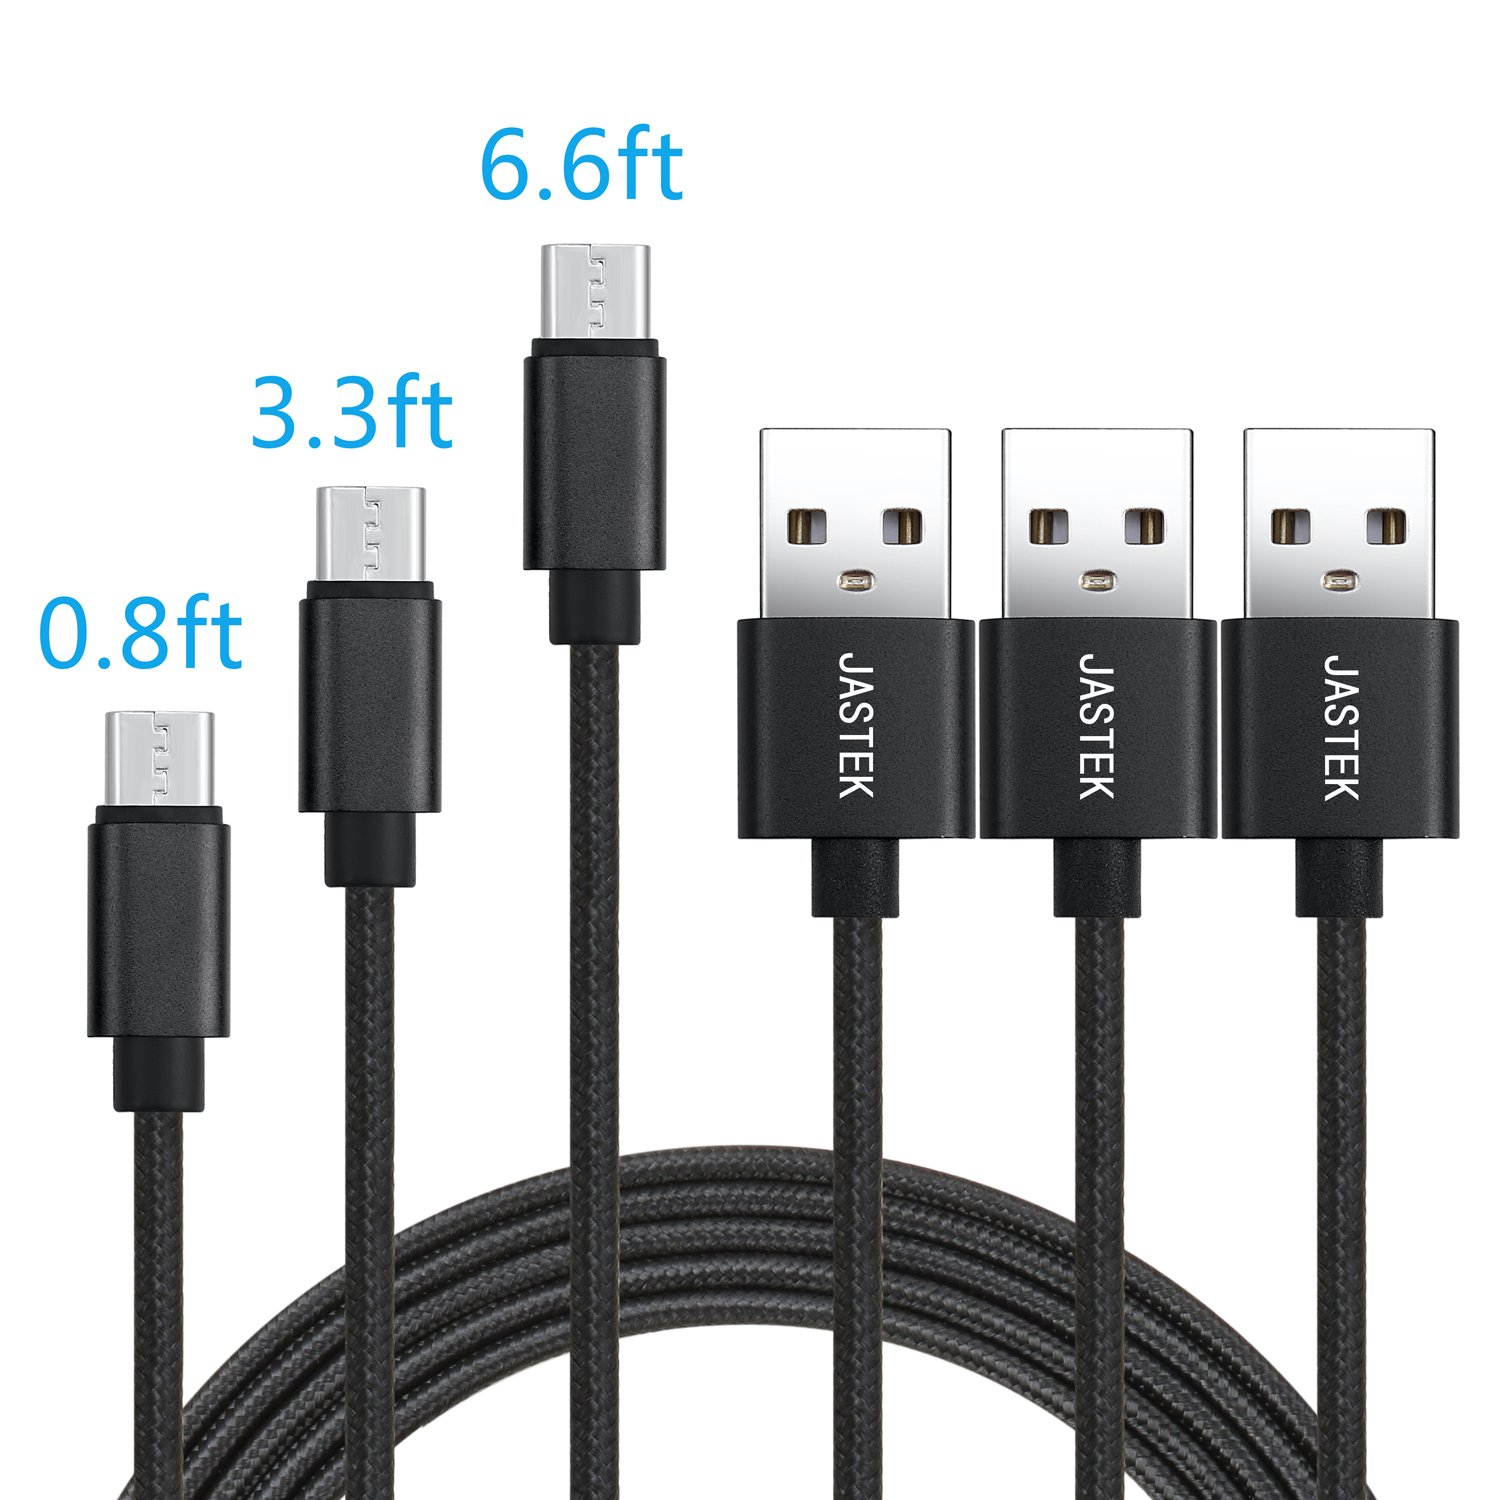 JASTEK Micro USB Cable 3Pack (0.8ft, 3.3ft, 6ft) Durable Nylon Braided High Speed 2A Current Charging Cables for Android, Samsung, Sony, Huawei, HTC, Nokia, LG, Nexus and other Smartphones - Black